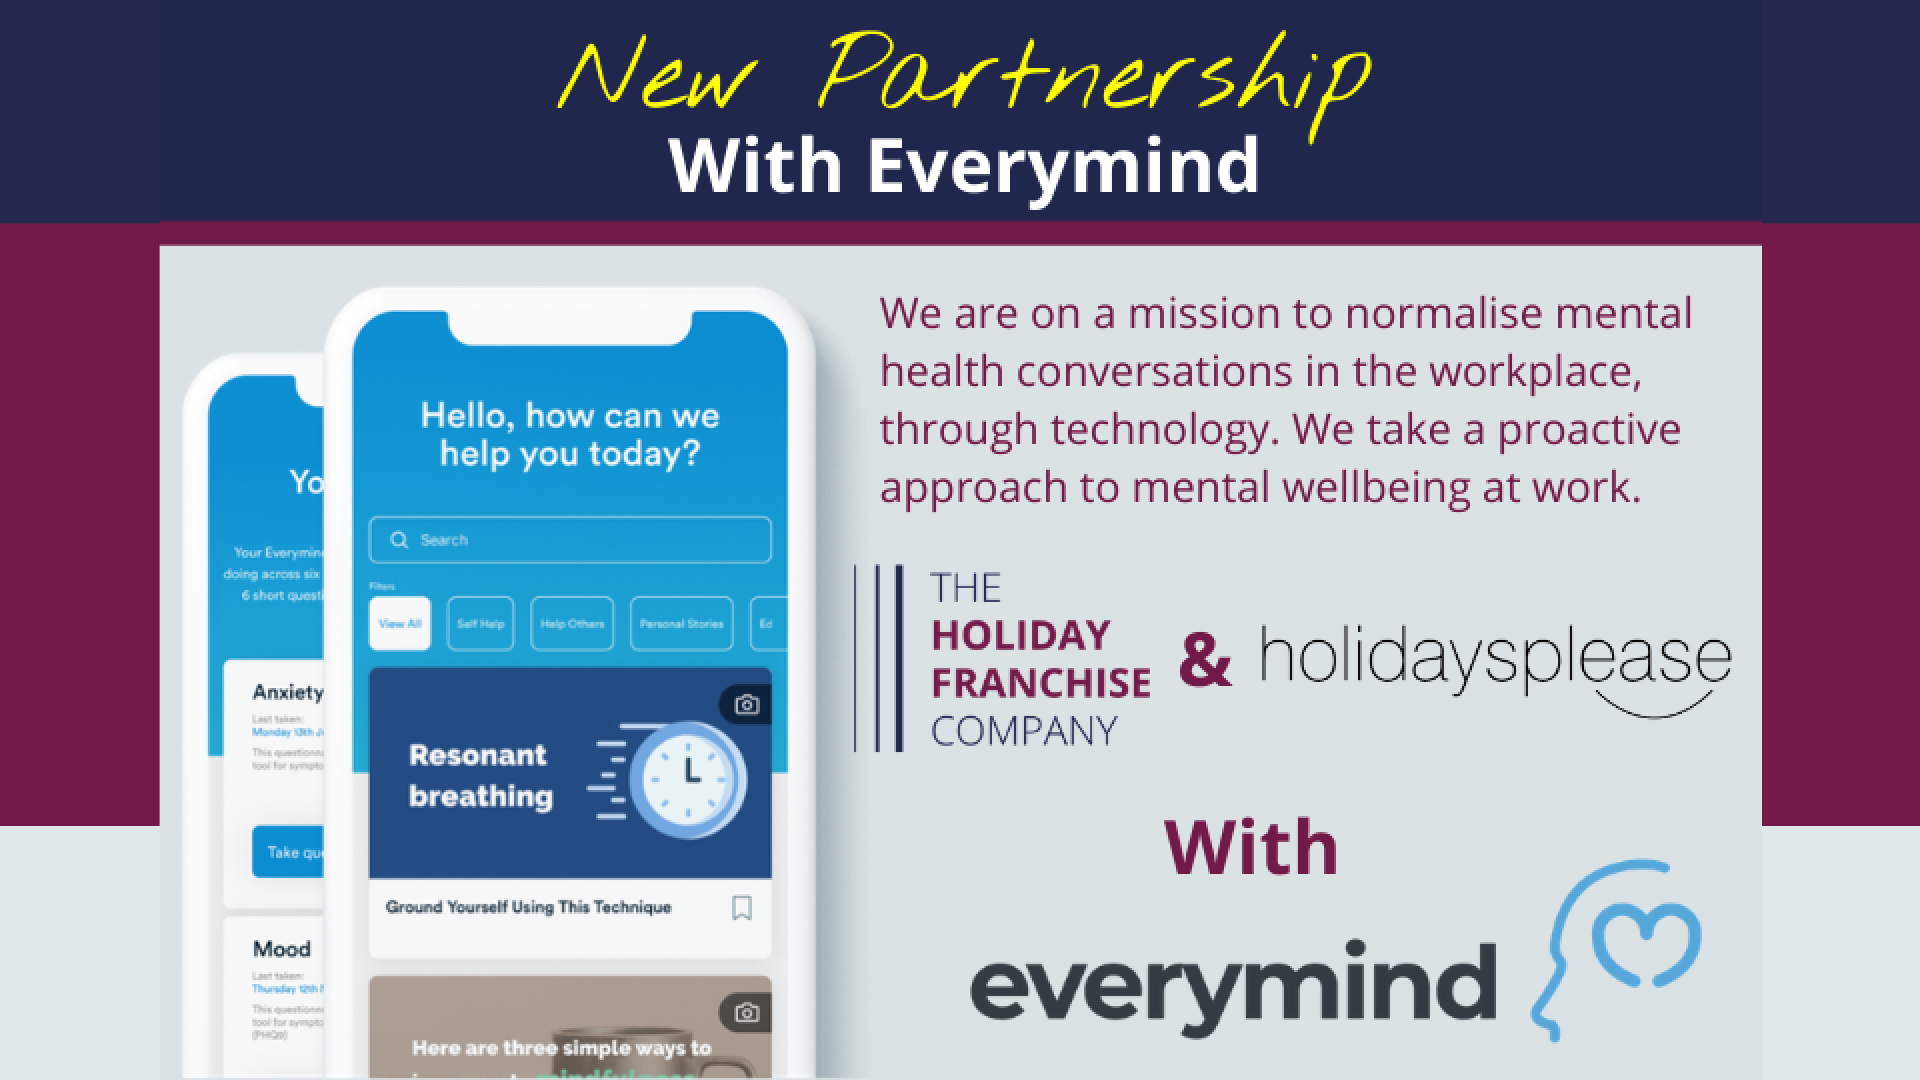 The Holiday Franchise Company Has Partnered With Everymind To Help Promote Mental Health Awareness.